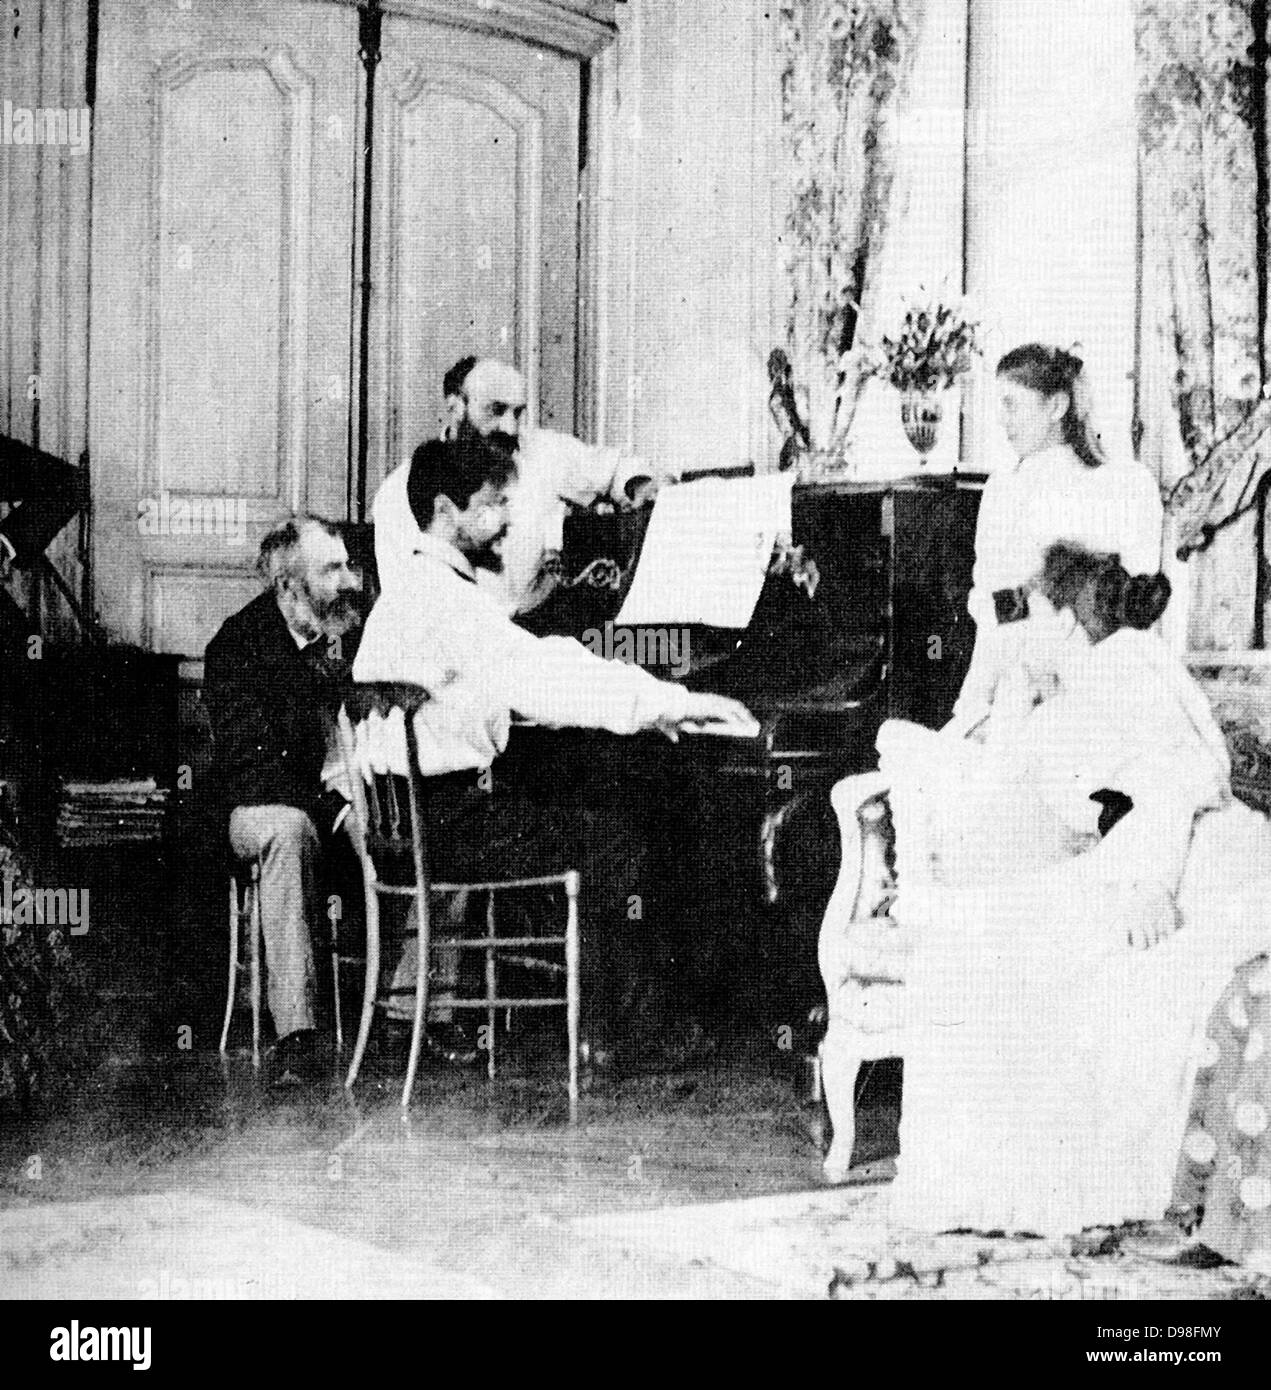 (Achille) Claude Debussy (1862-1919) French composer. - Stock Image